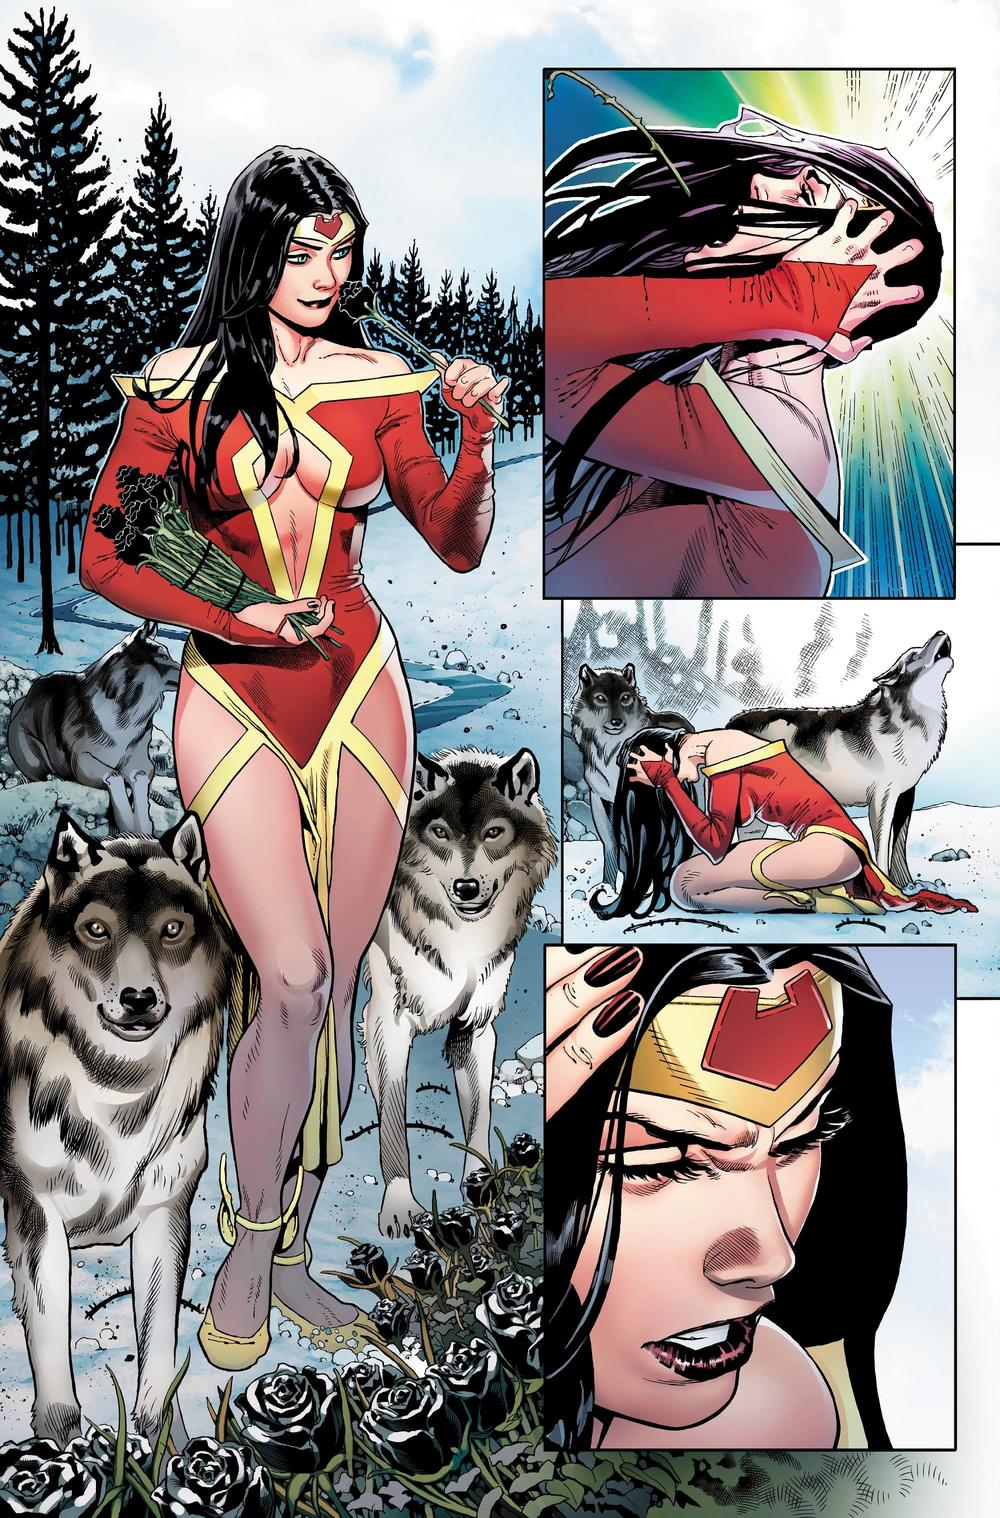 MARVEL COMICS PRESENTS #6 Interior art by Paulo Siqueira with inks by Oren Junior, and colors by